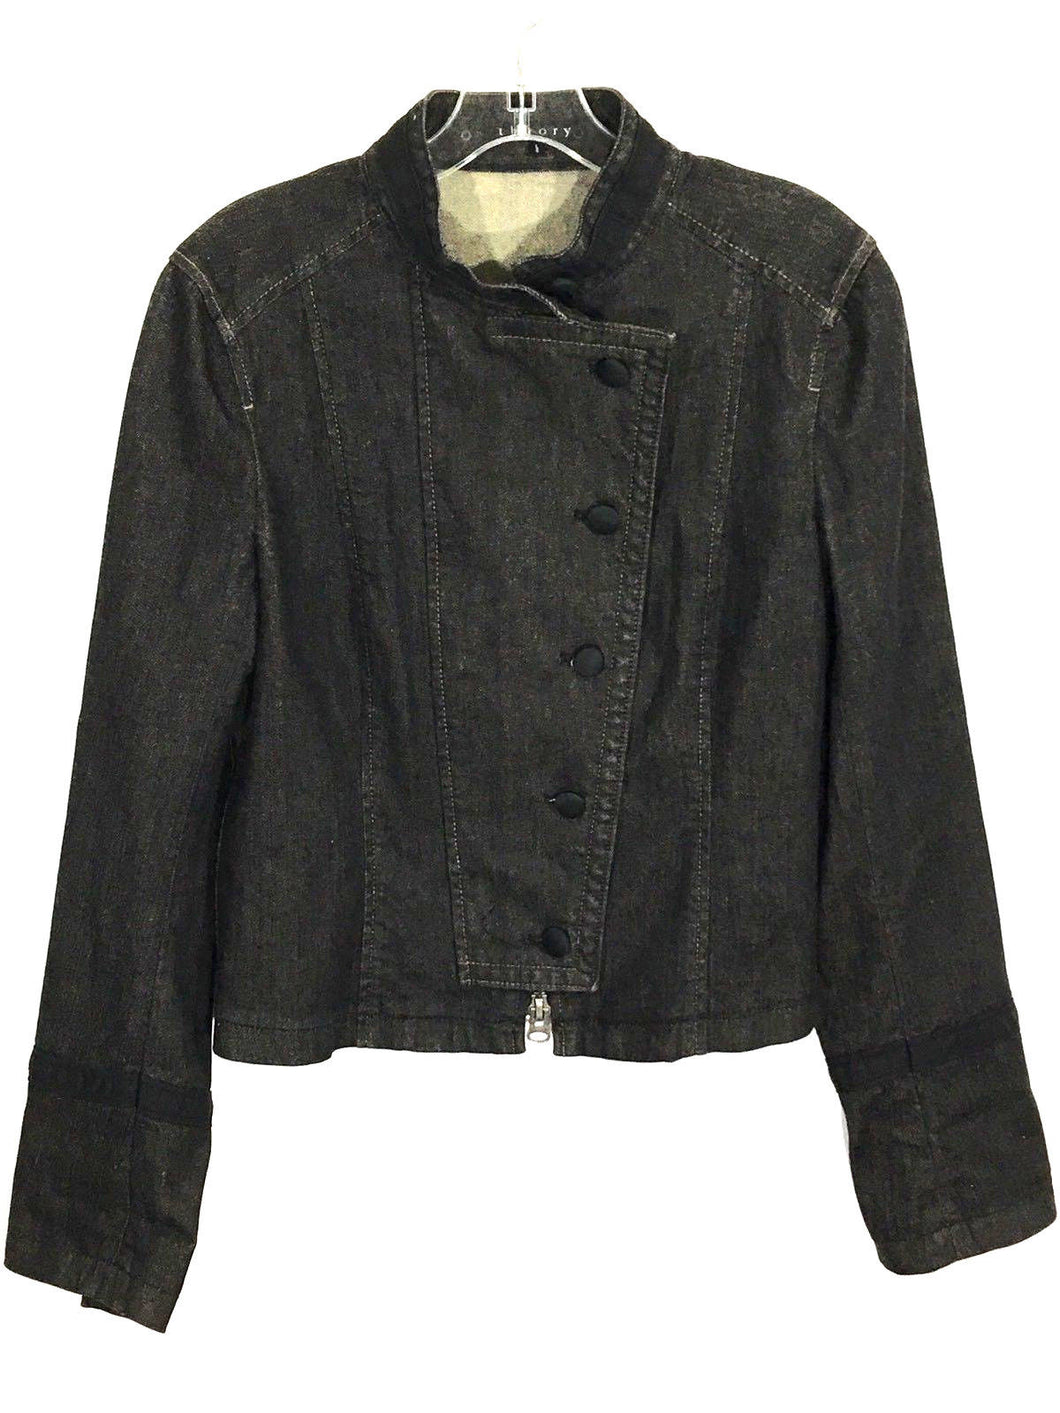 Theory Military-Style Denim Jean Jacket Satin Buttons Full Zip Black Women's L - FunkyCrap Boutique